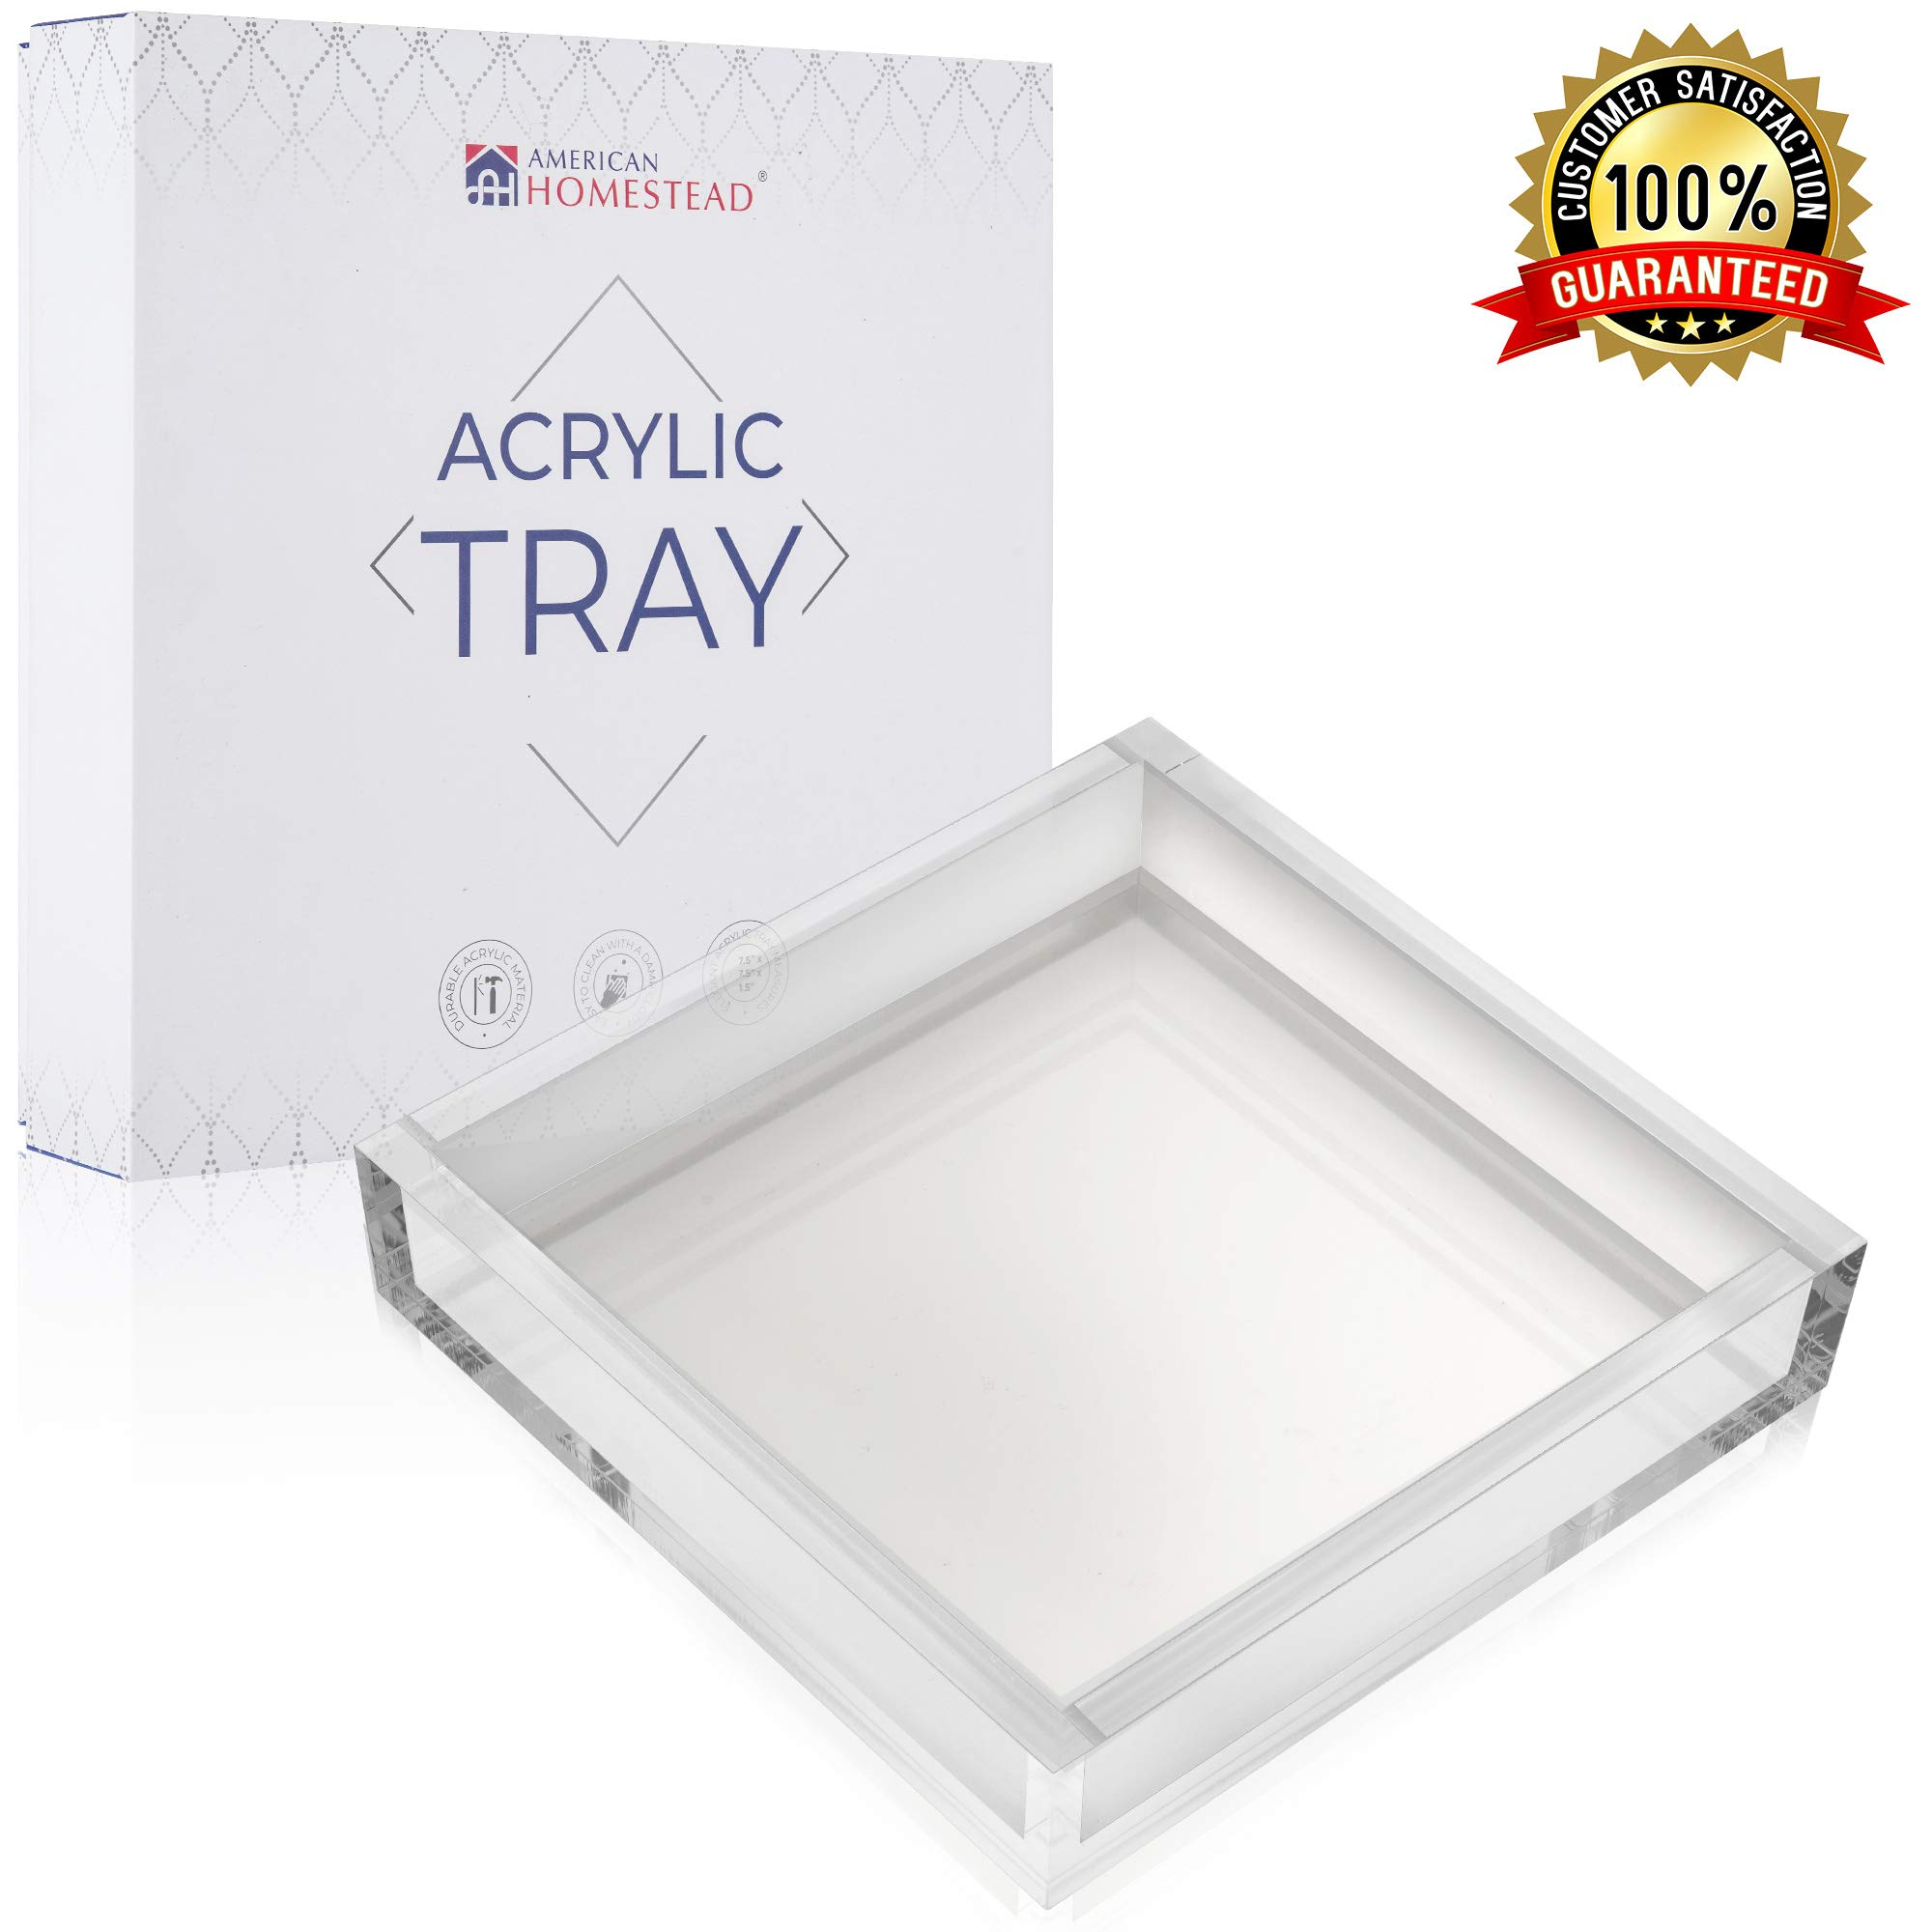 """AH AMERICAN HOMESTEAD Clear Acrylic Tray, Paper Napkin Holder for Tables - Vanity Trays For Bathroom, Kitchen Countertops, Dining Tables – Makeup Vanity Perfume Tray – 7.5""""x7.5"""" Luncheon Napkins Caddy"""